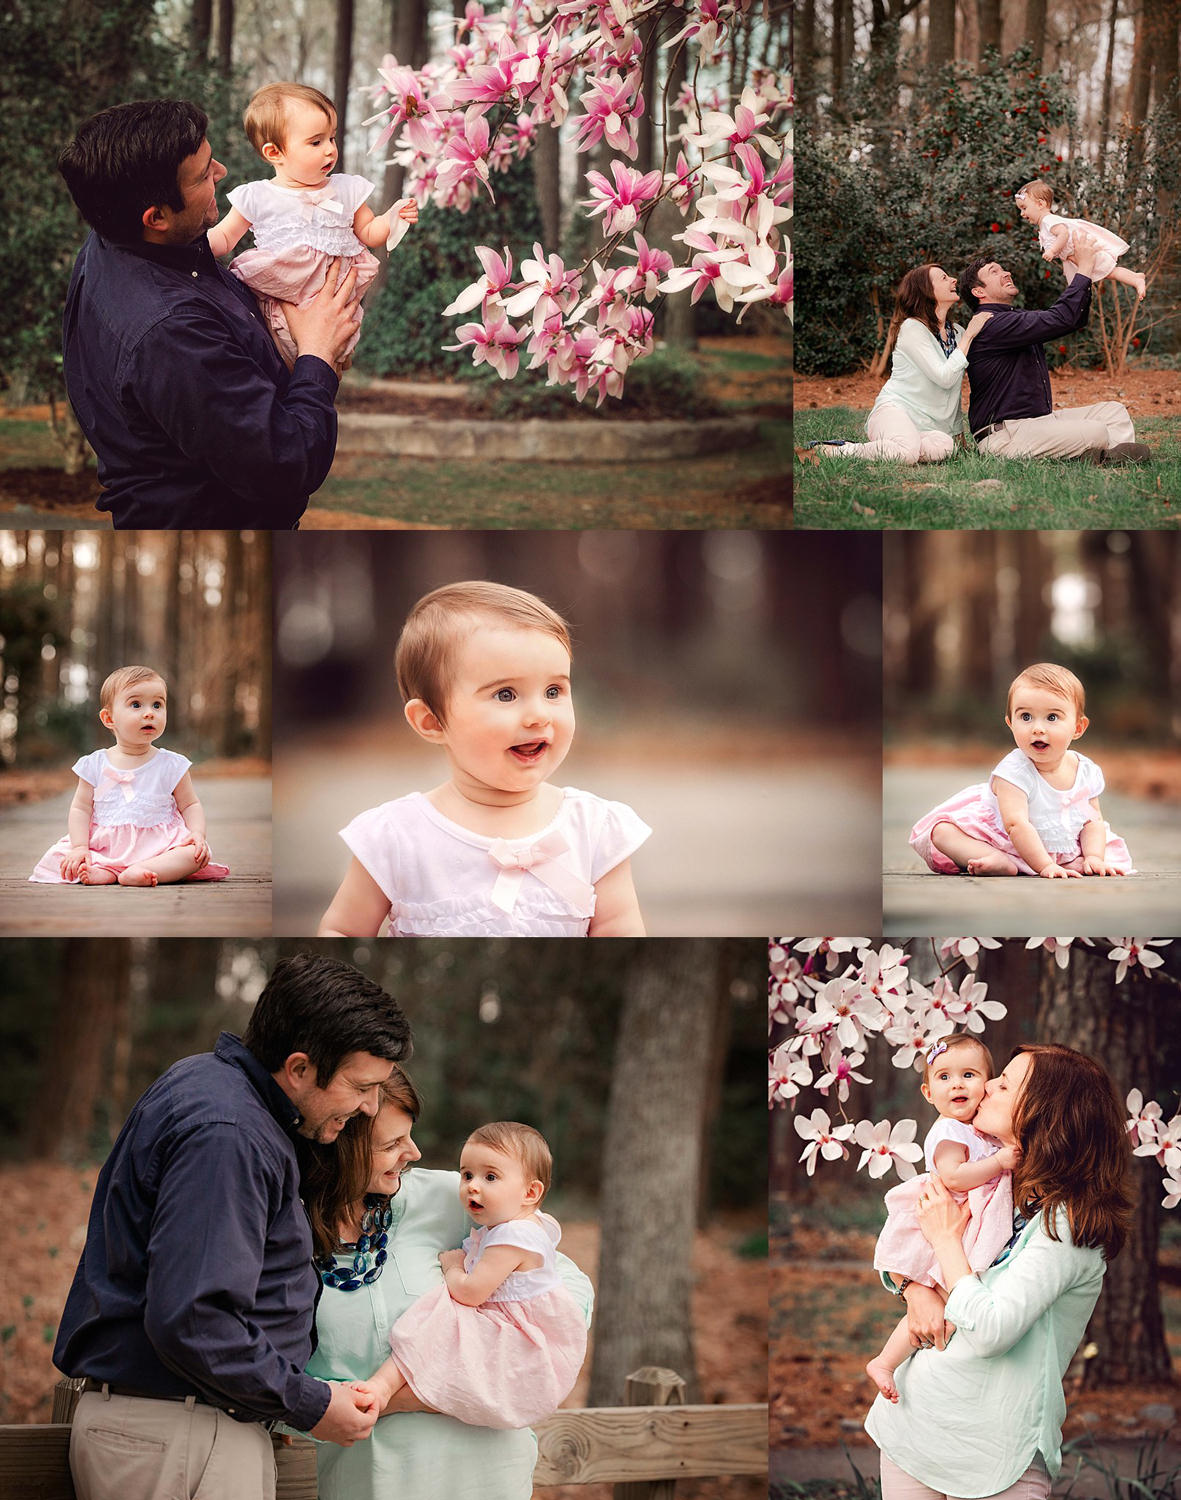 virginia-beach-spring-family-lfiestyle-pictures-pink-blossoms-cherry-trees-melissa-bliss-photography.jpg